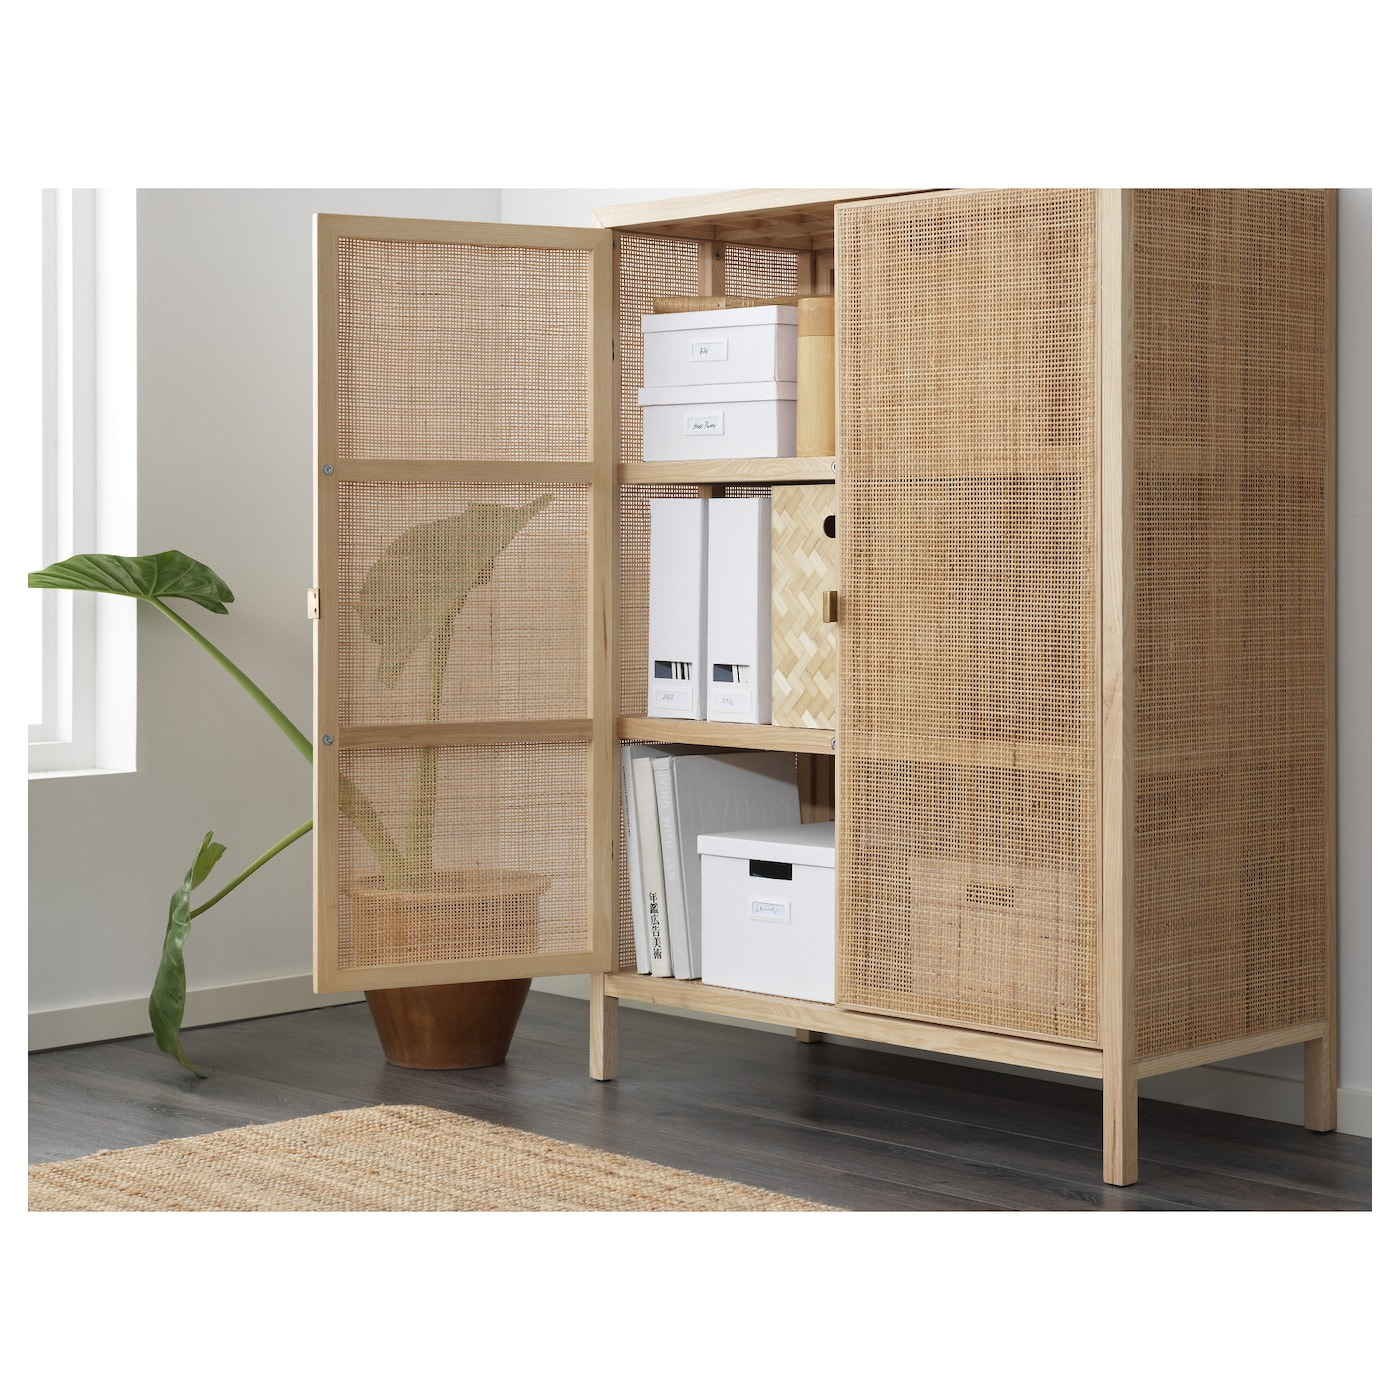 Ikea Stockholm Cabinet Made From Rattan And Ash Natural Materials That Age  With Grace Jpg 2000x2000